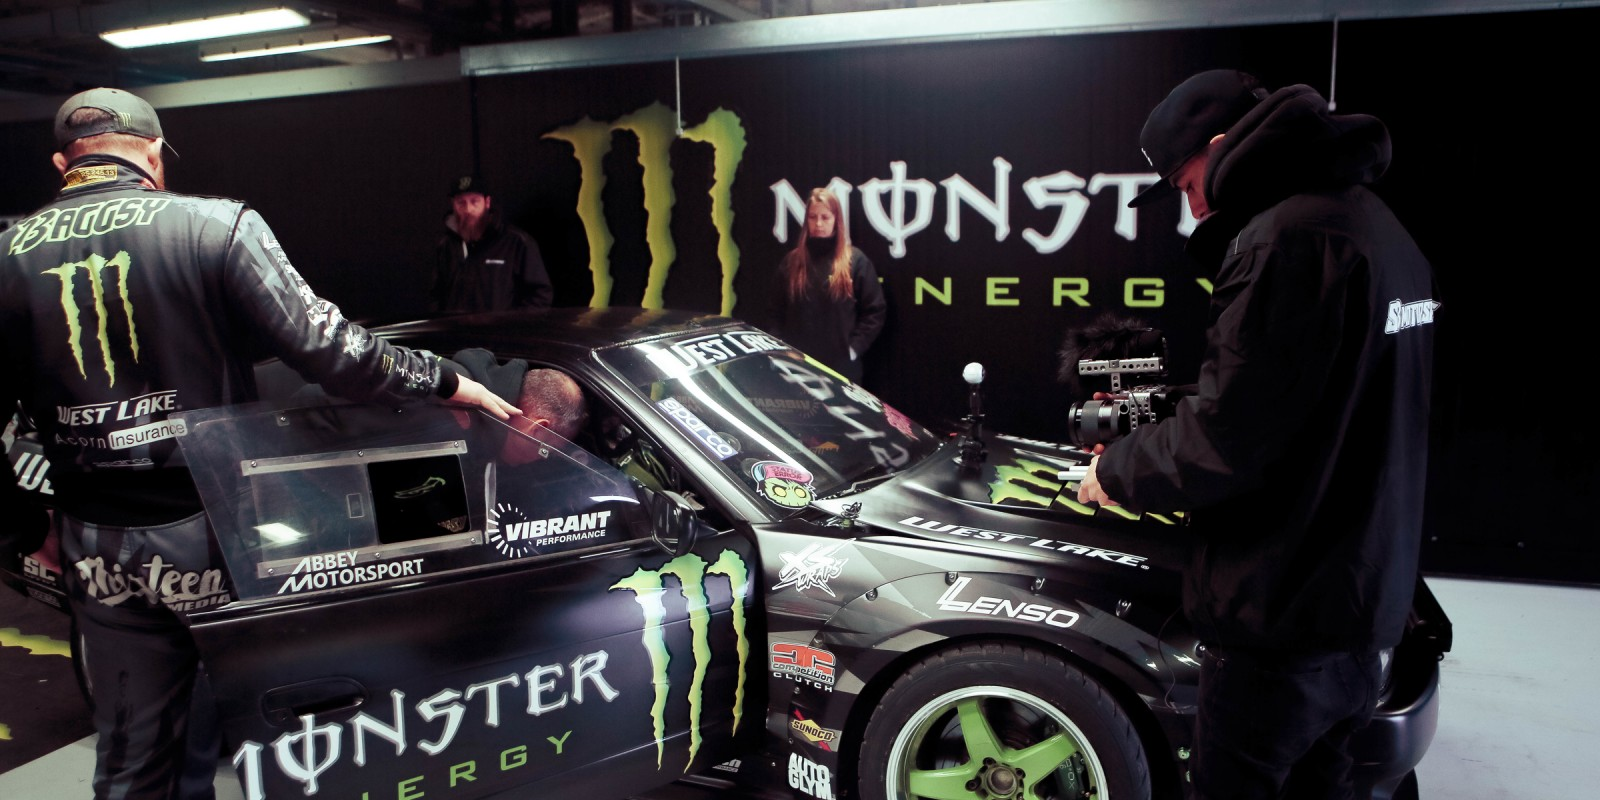 Pictures of Baggsy and his team inside the box at Monza Rally Show